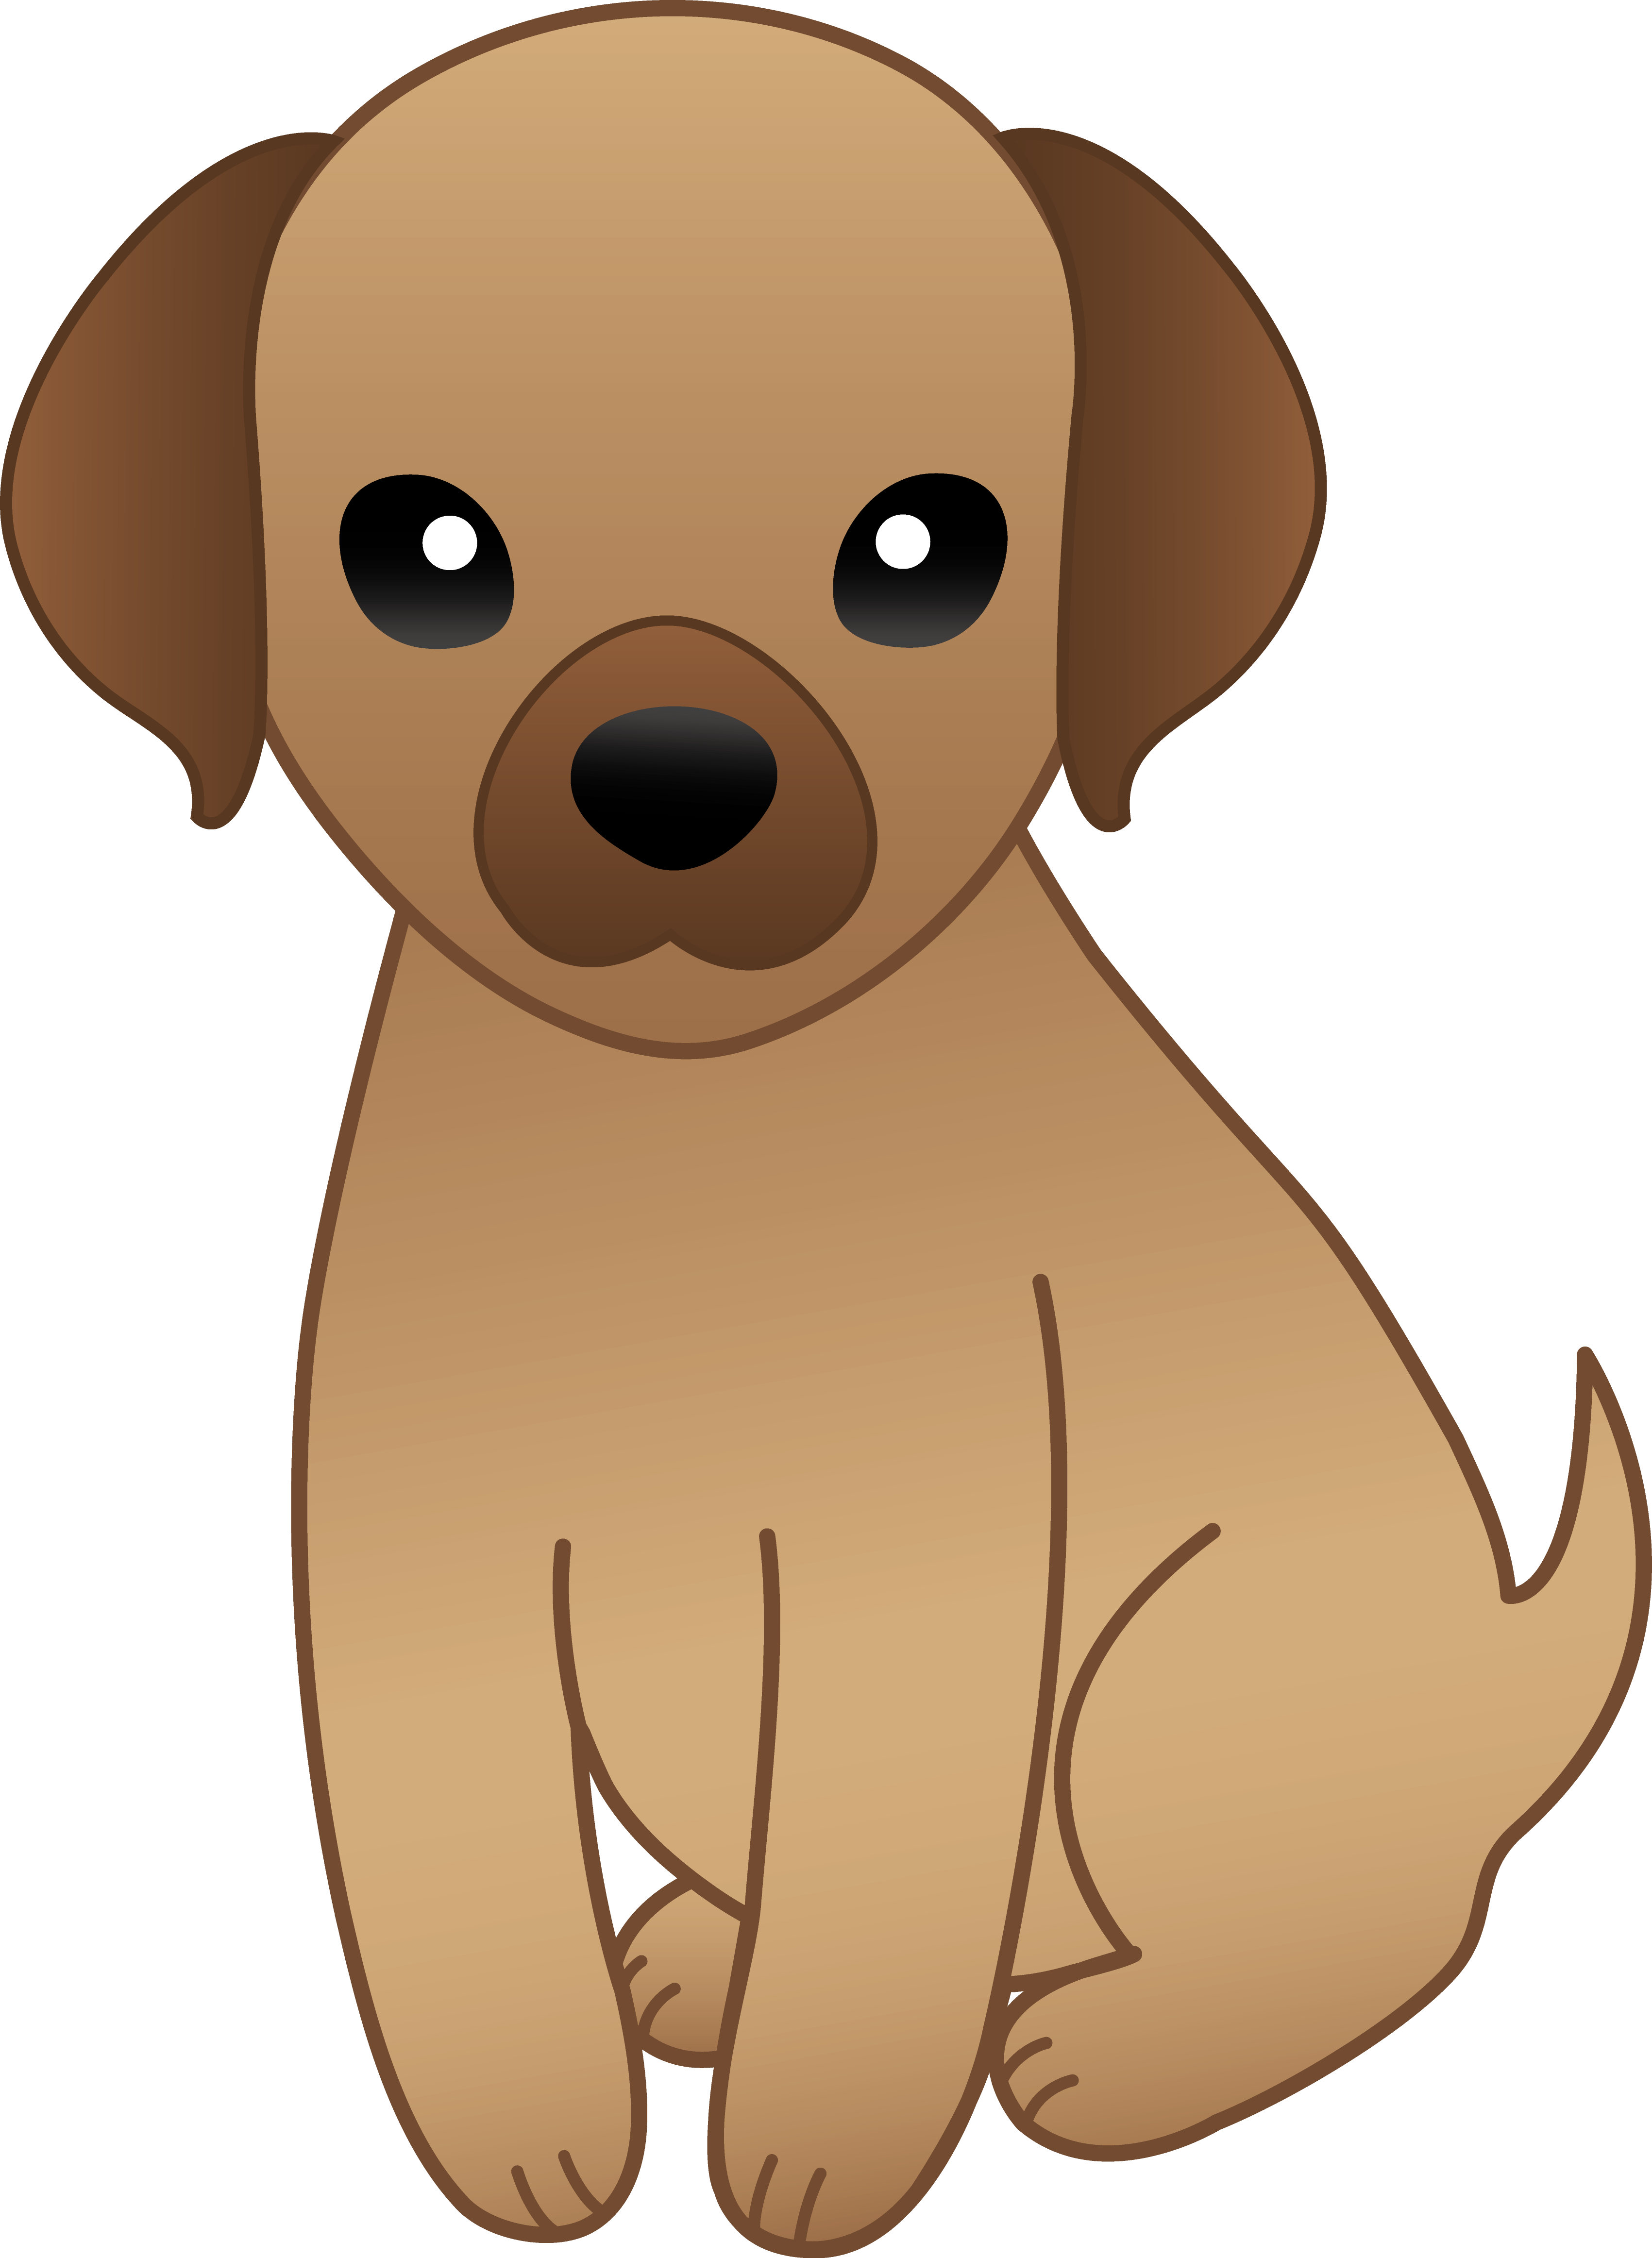 Puppy clipart #19, Download drawings